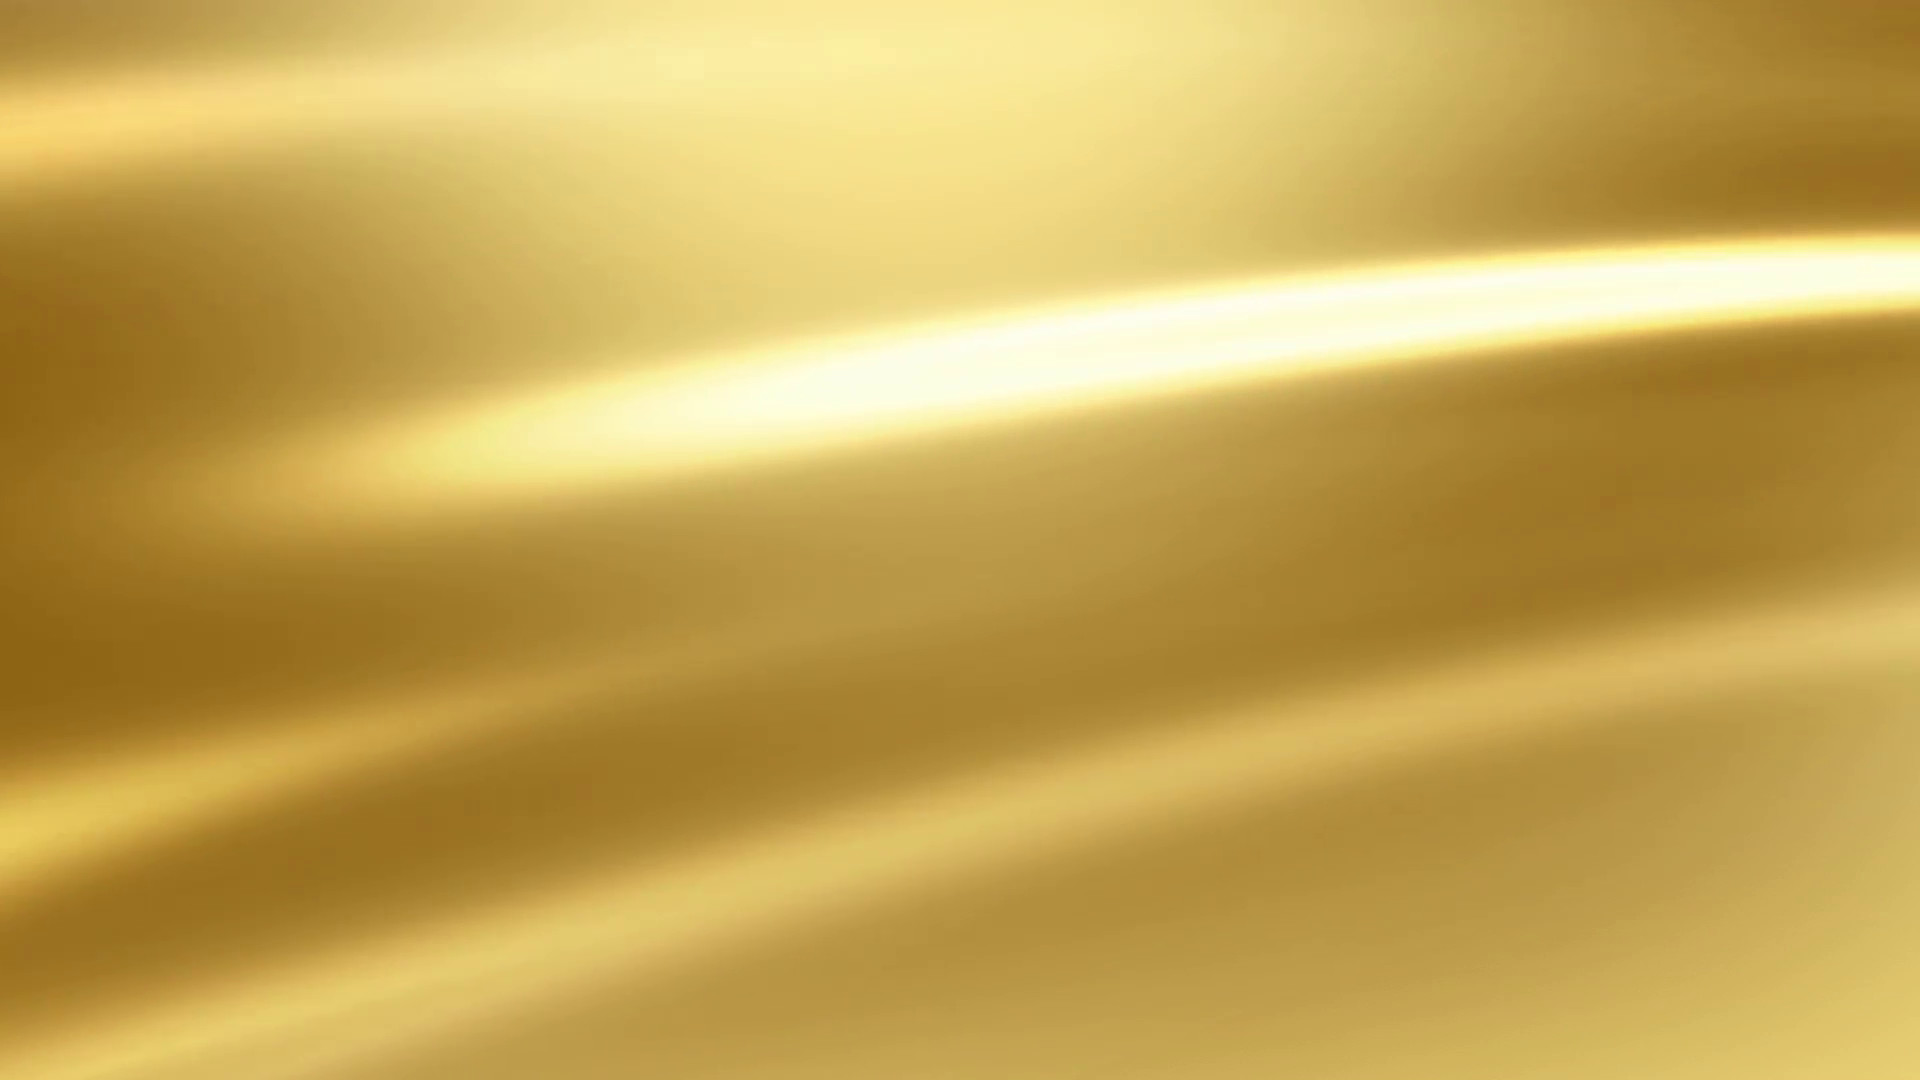 Subscription Library abstract gold background luxury cloth or liquid wave  or wavy folds of grunge silk texture satin